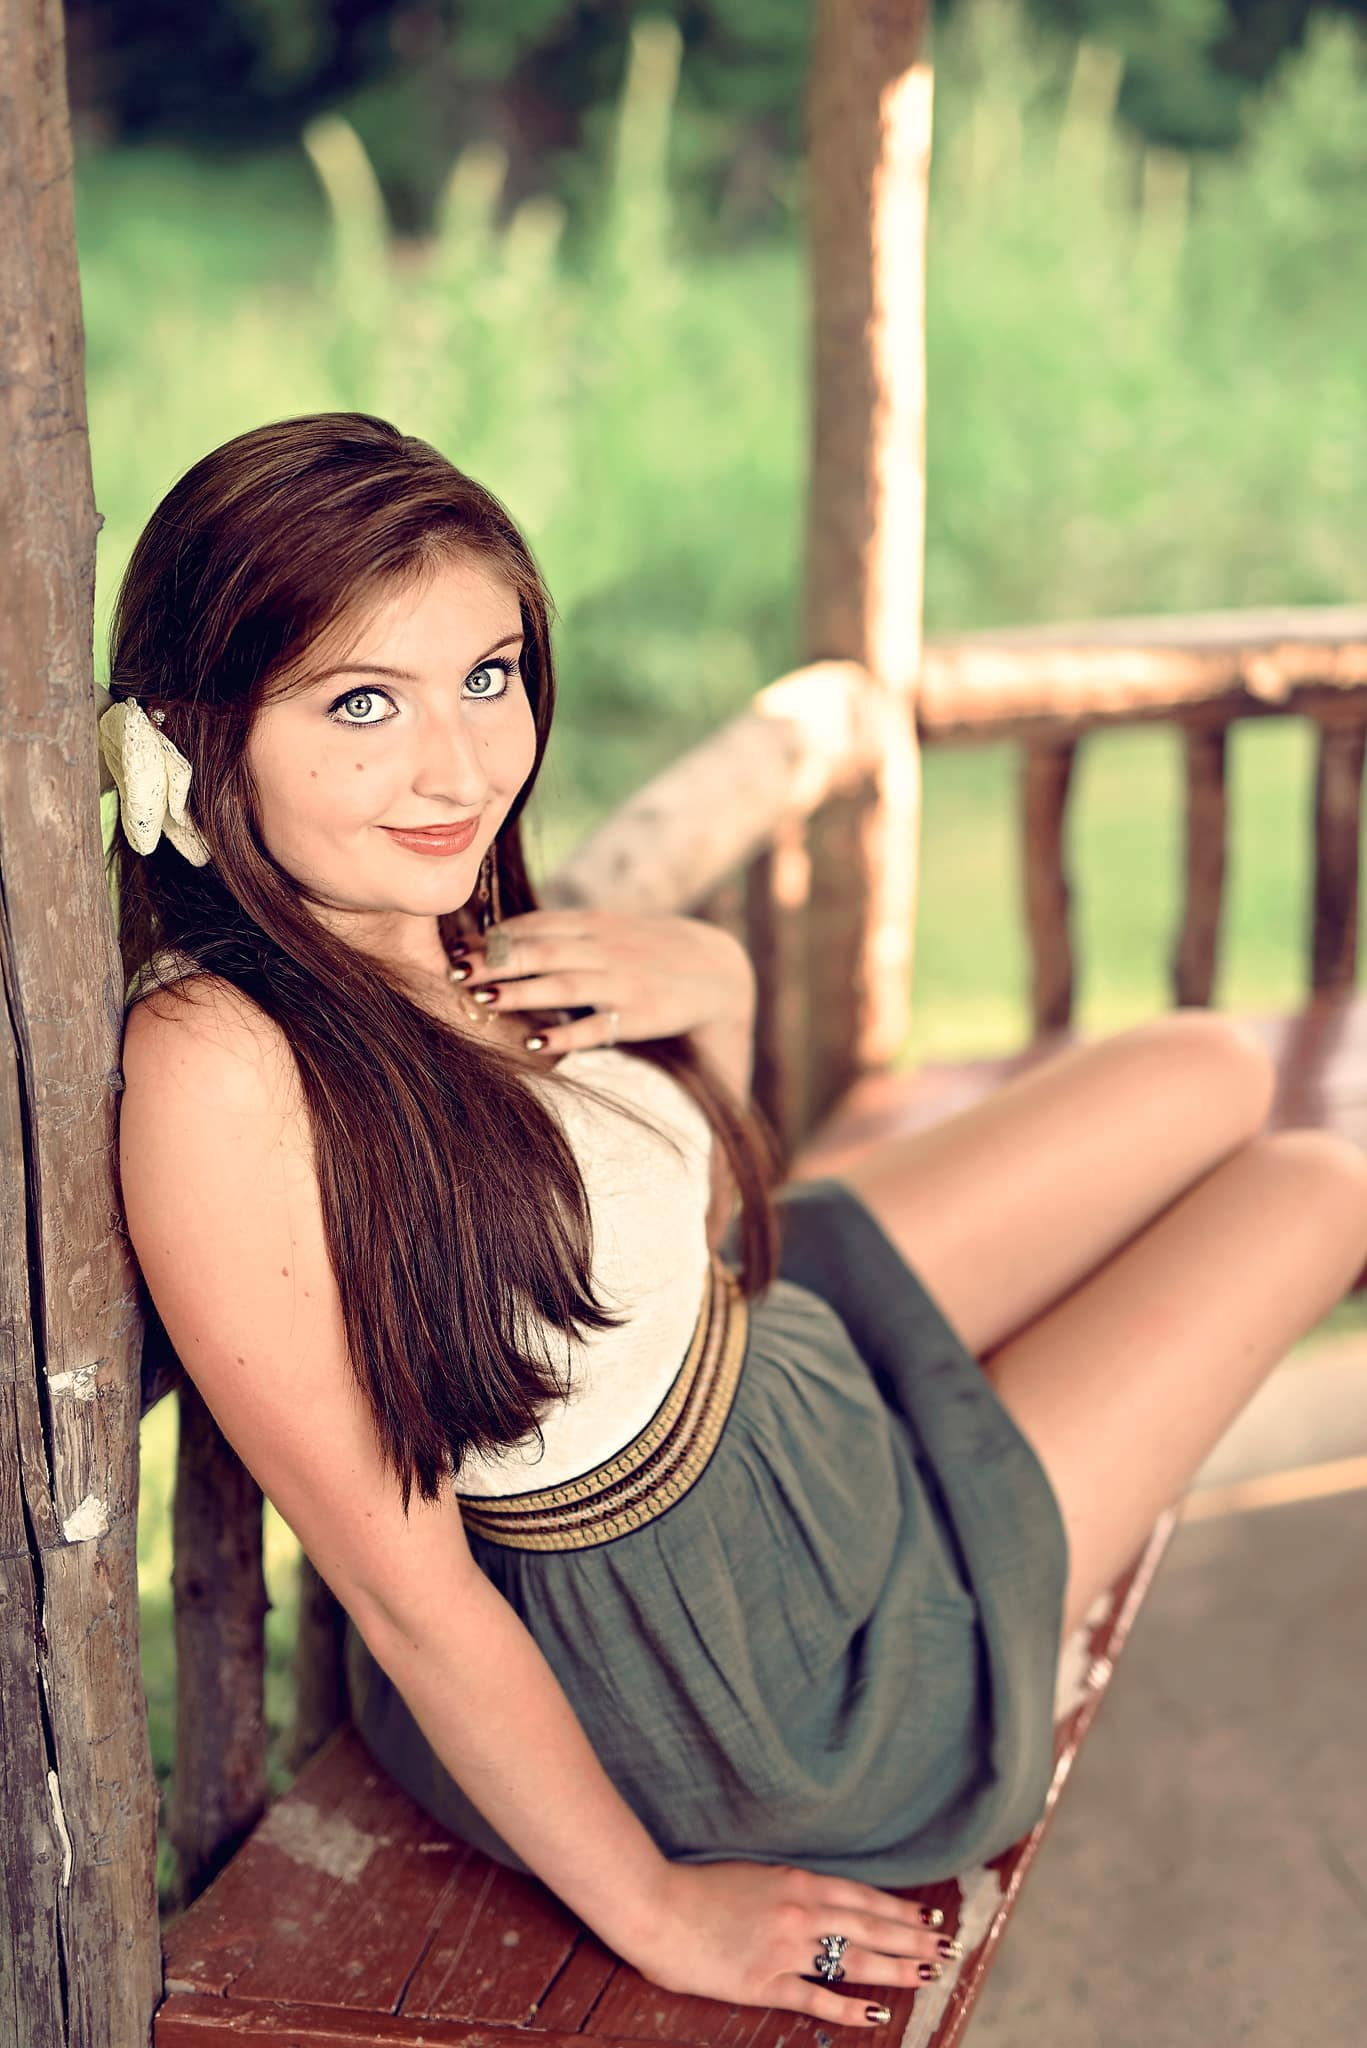 college springs senior dating site Meet thousands of local colorado springs singles, as the worlds largest dating site we make dating in colorado springs easy plentyoffish is 100% free, unlike paid dating.